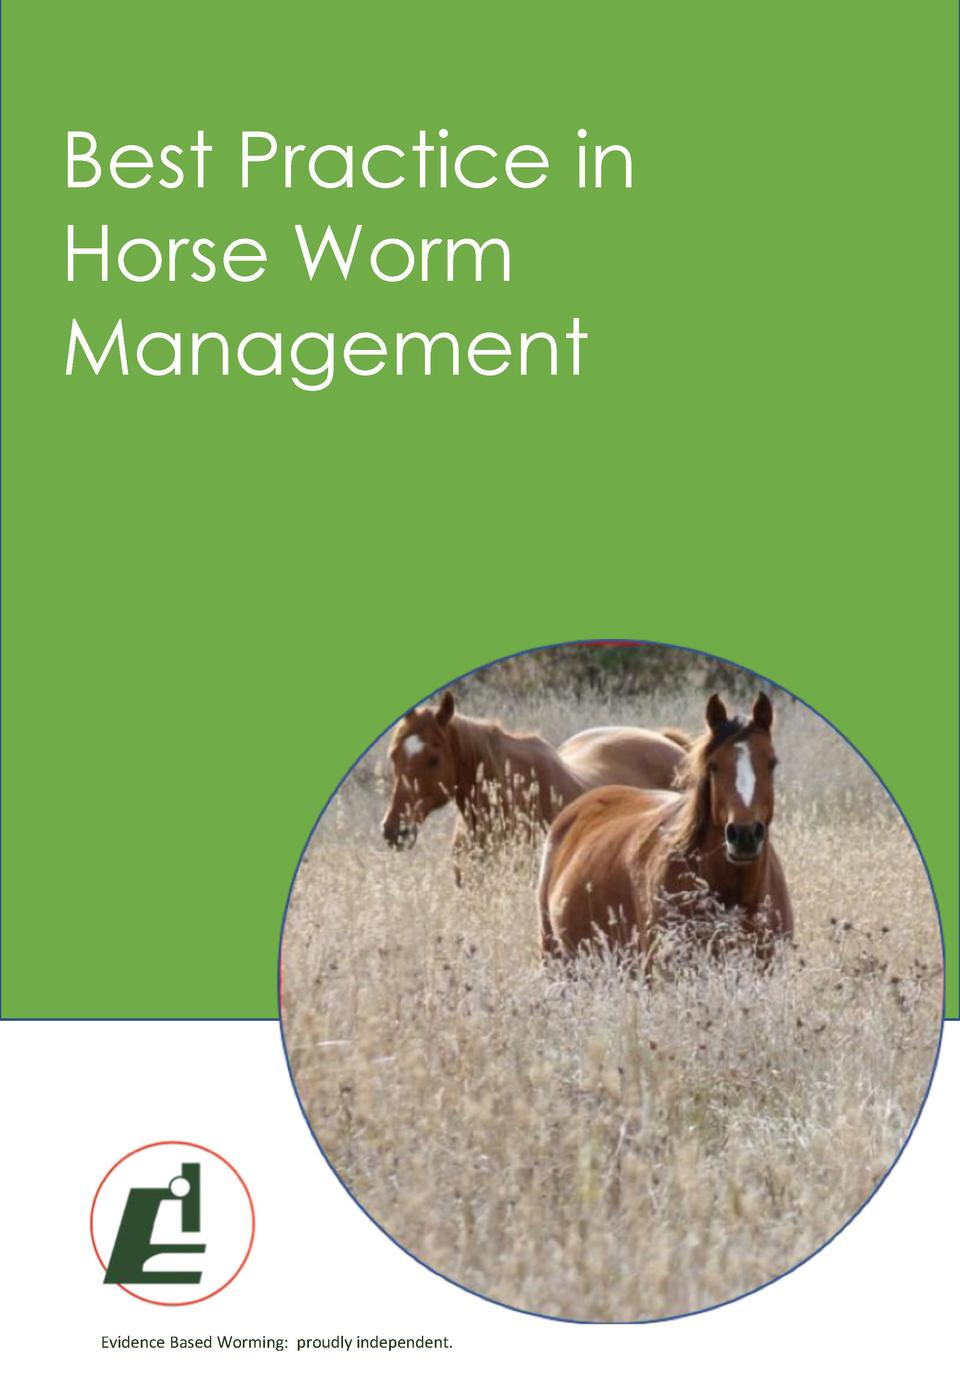 Best Practice in Horse Worm Management  Evidence Based Worming  proudly independent.